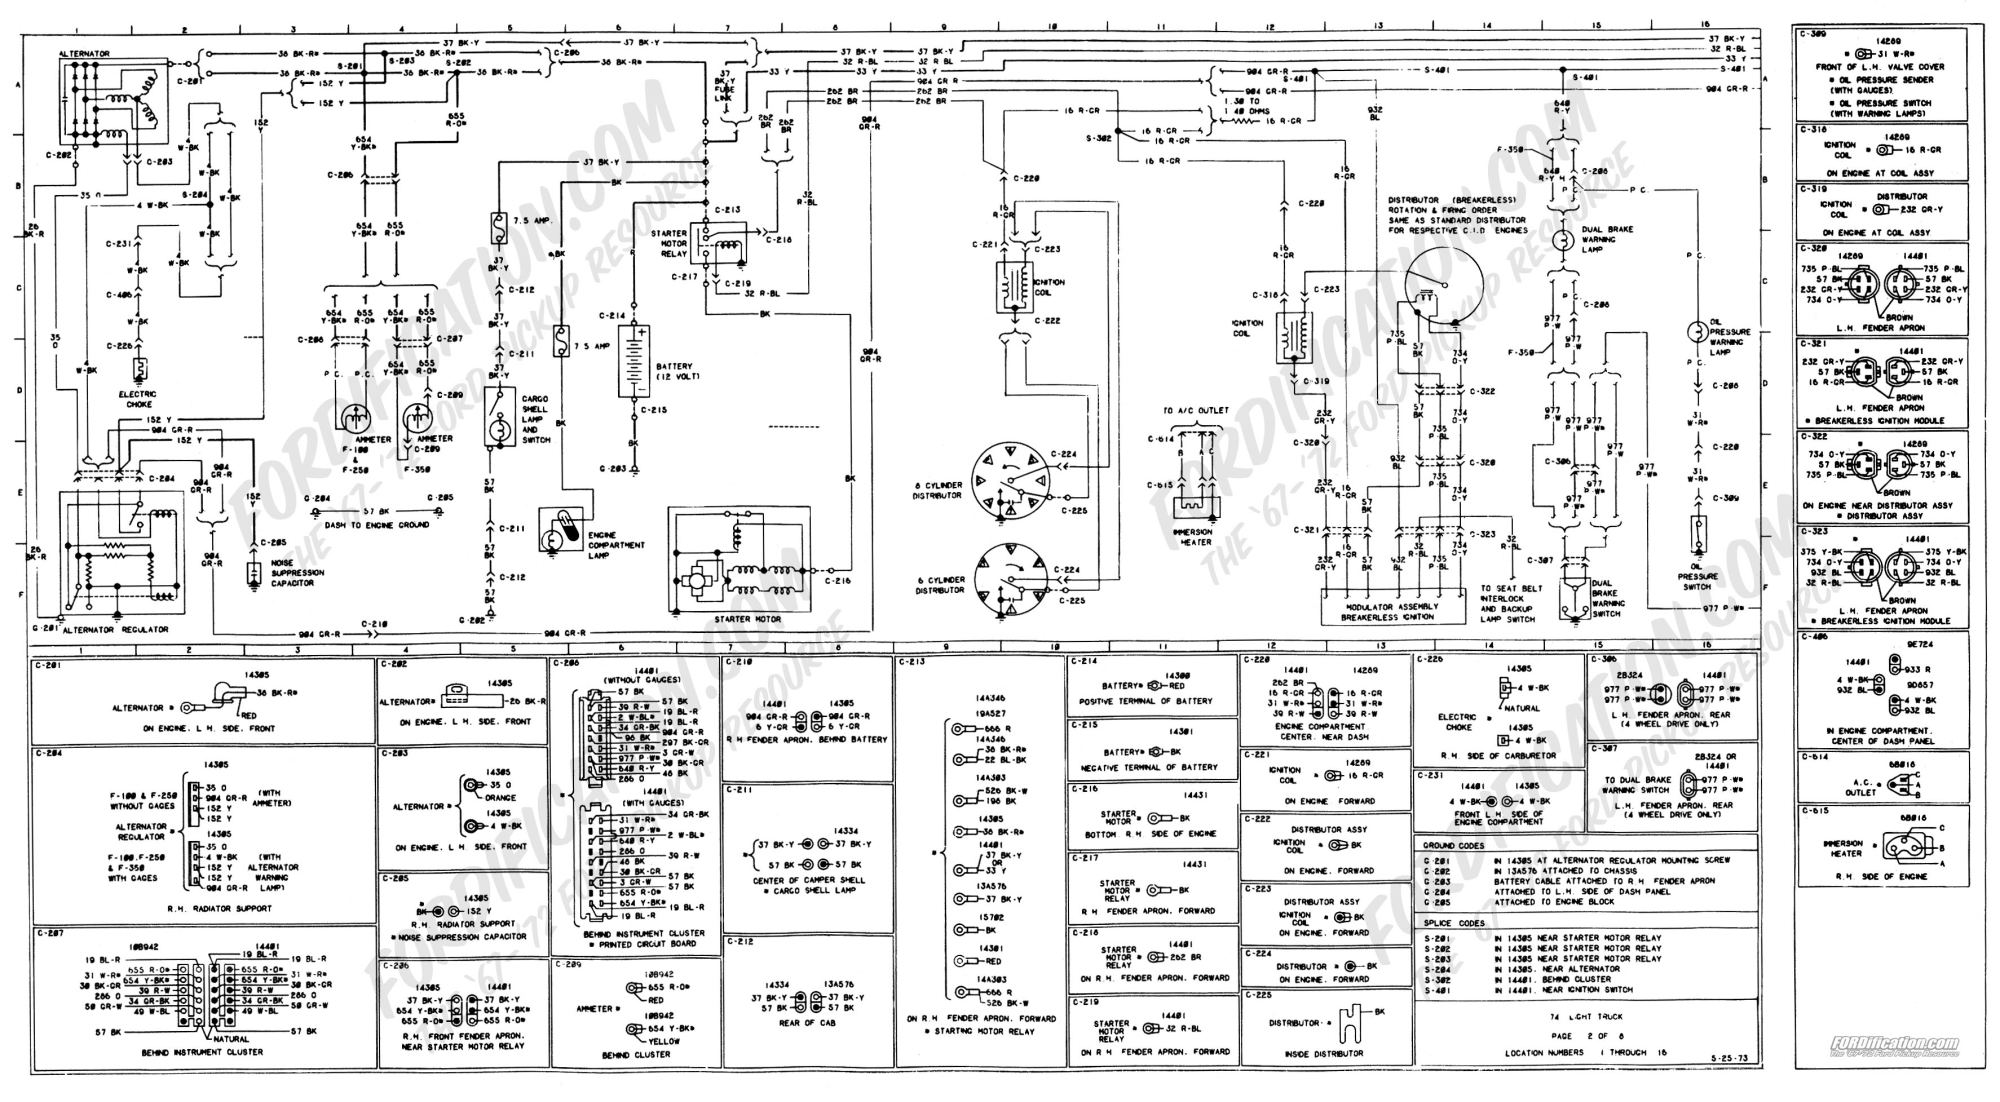 hight resolution of 1973 1979 ford truck wiring diagrams schematics fordification net 2001 ford truck wiring diagrams 1979 ford f100 wiring diagram